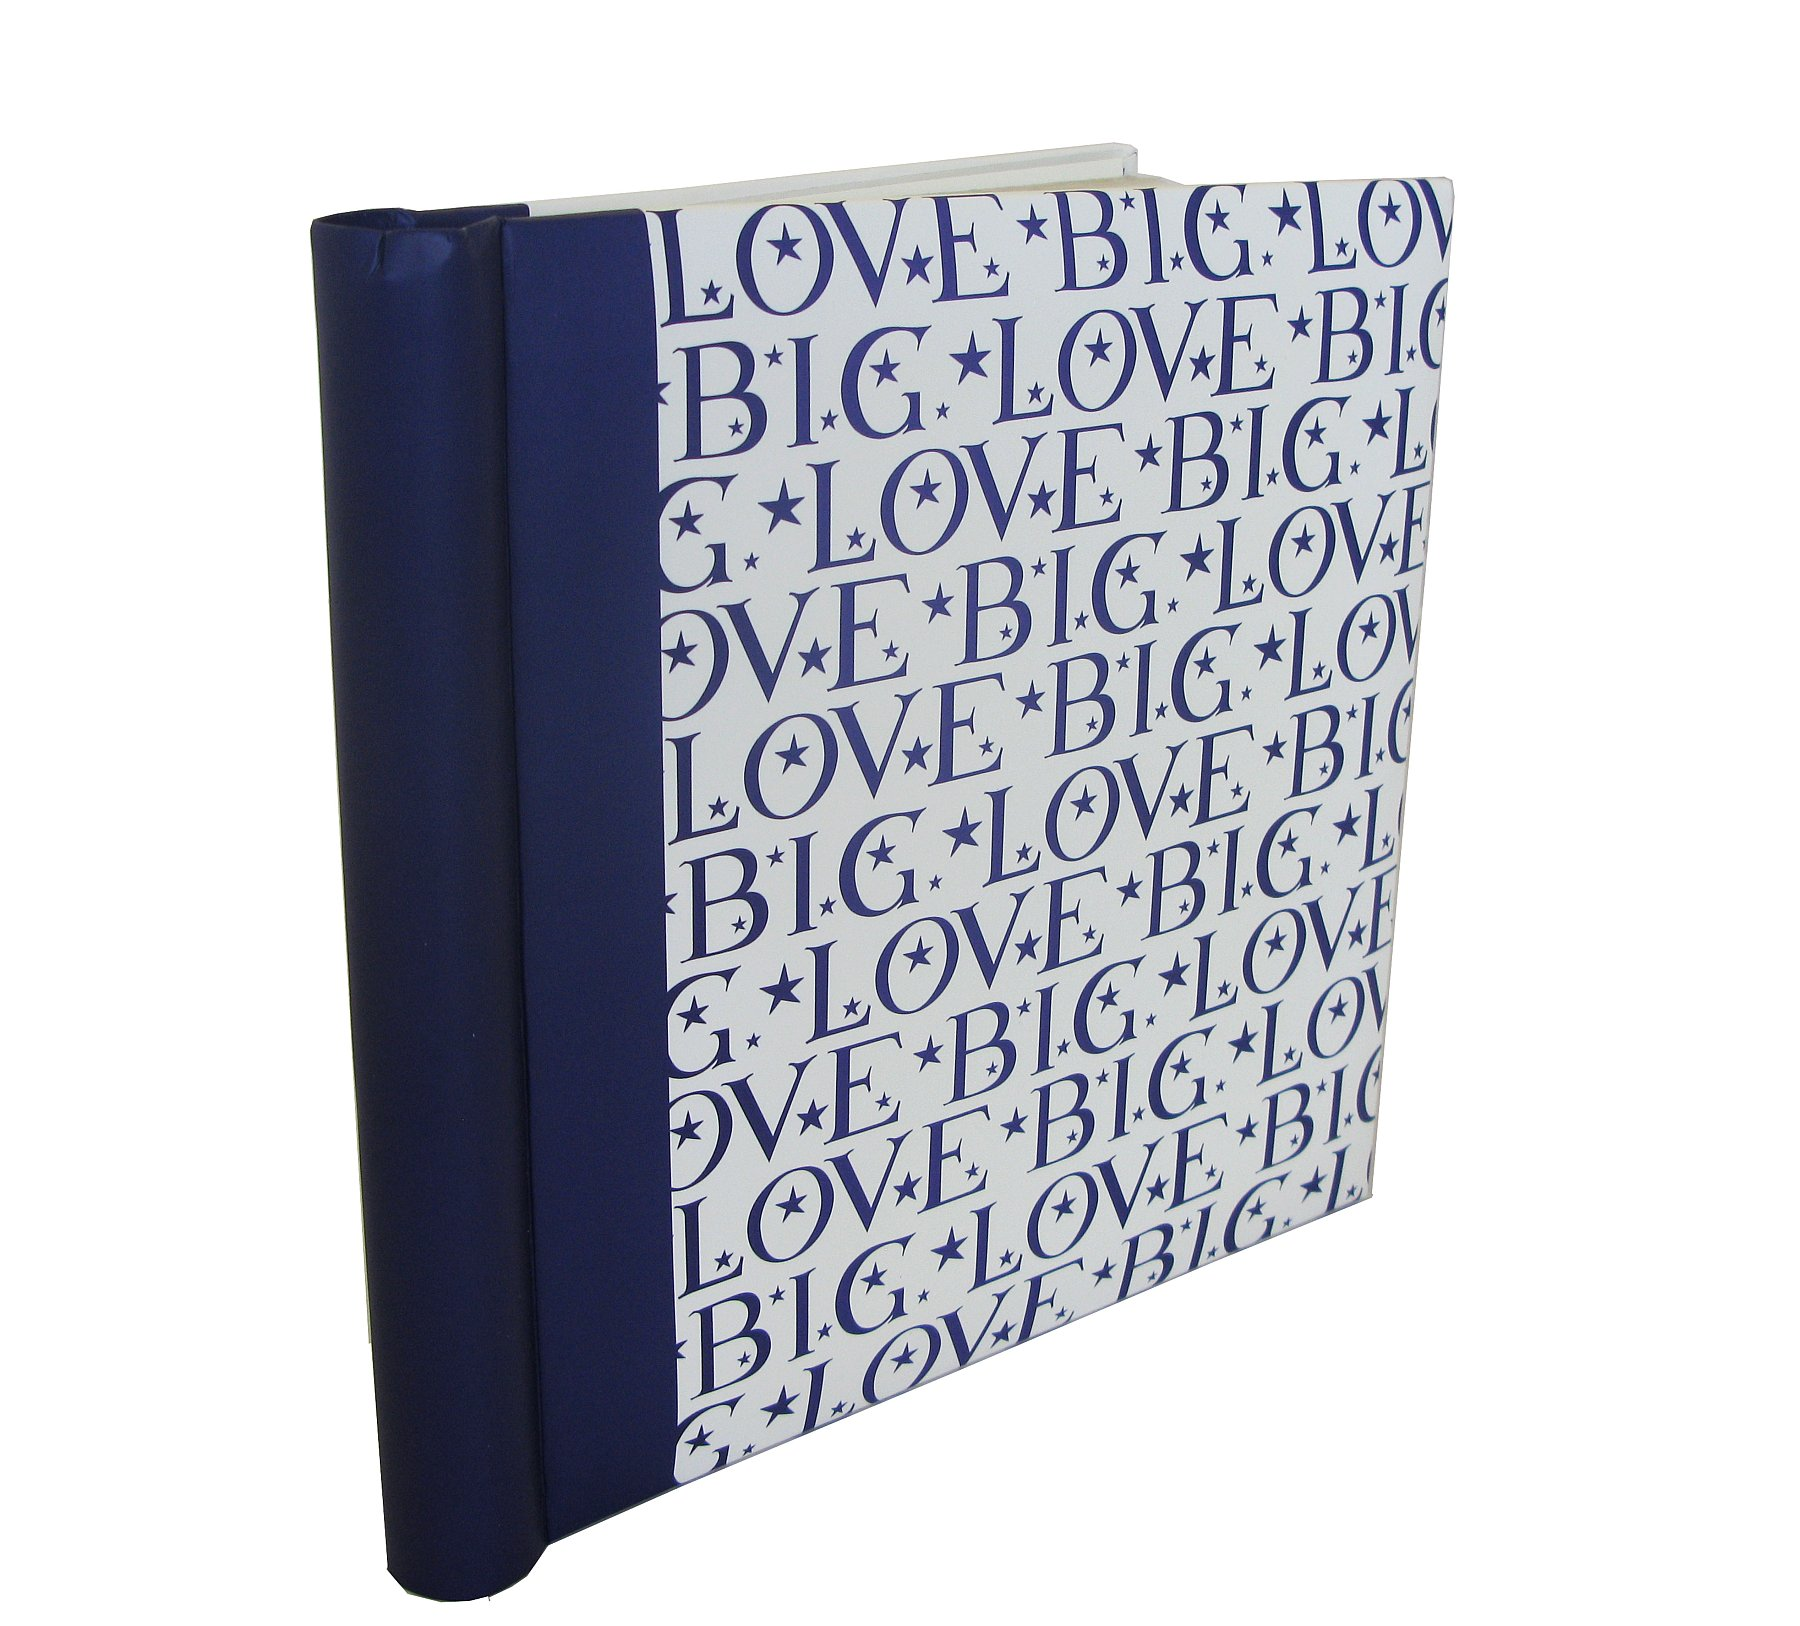 Love Photo Albums Skies big love photo album